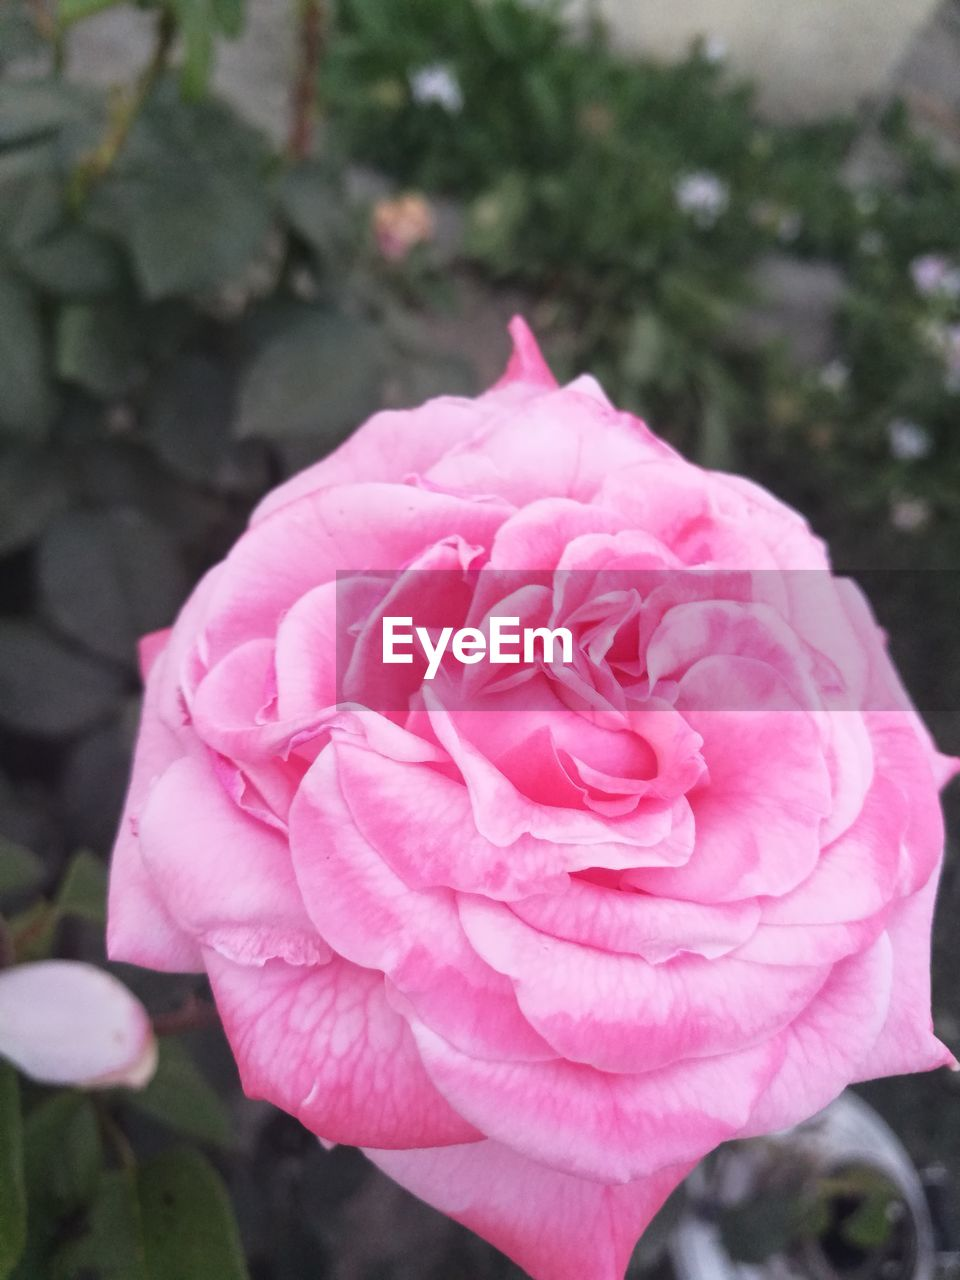 flower, petal, pink color, nature, rose - flower, flower head, fragility, beauty in nature, outdoors, growth, plant, close-up, day, focus on foreground, no people, freshness, blooming